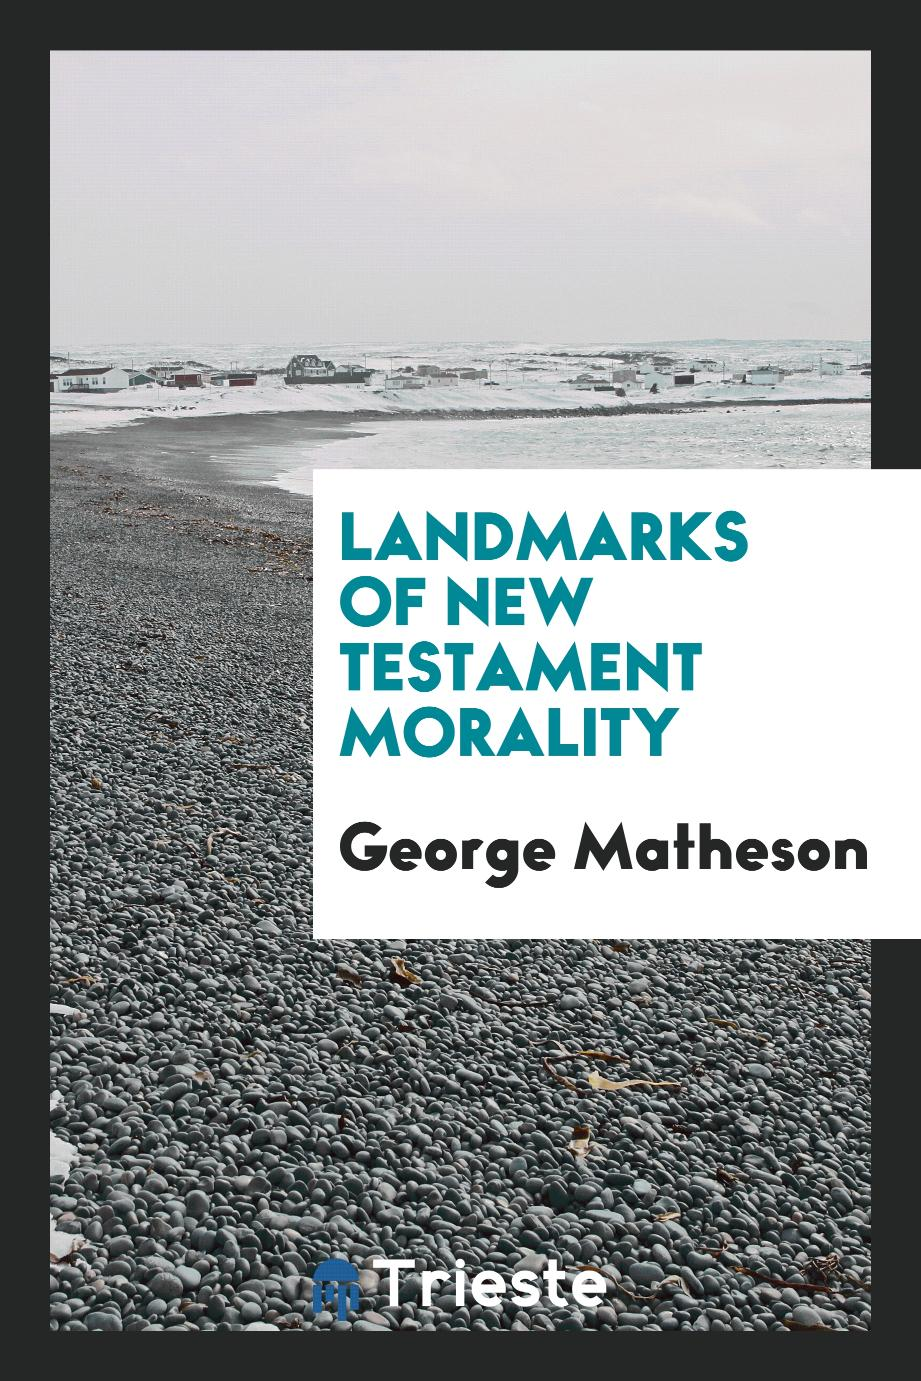 George Matheson - Landmarks of New Testament morality